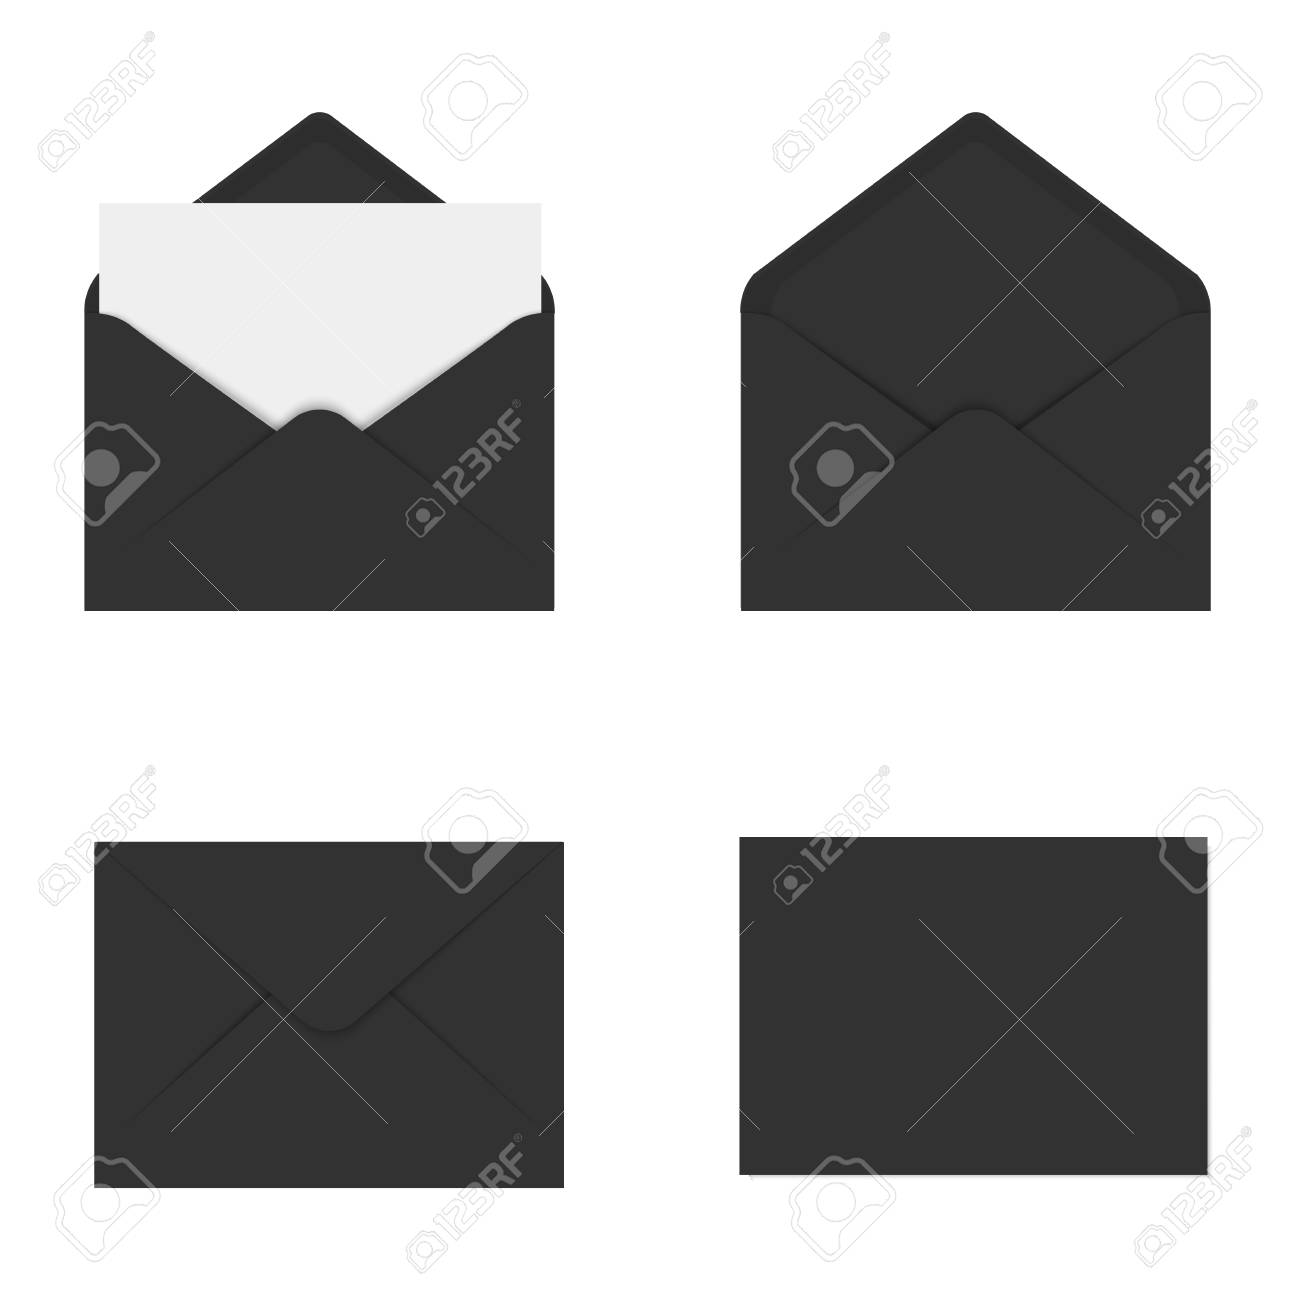 Realistic black mockup envelope for letter or invitation card realistic black mockup envelope for letter or invitation card vector stock vector 89175163 stopboris Image collections